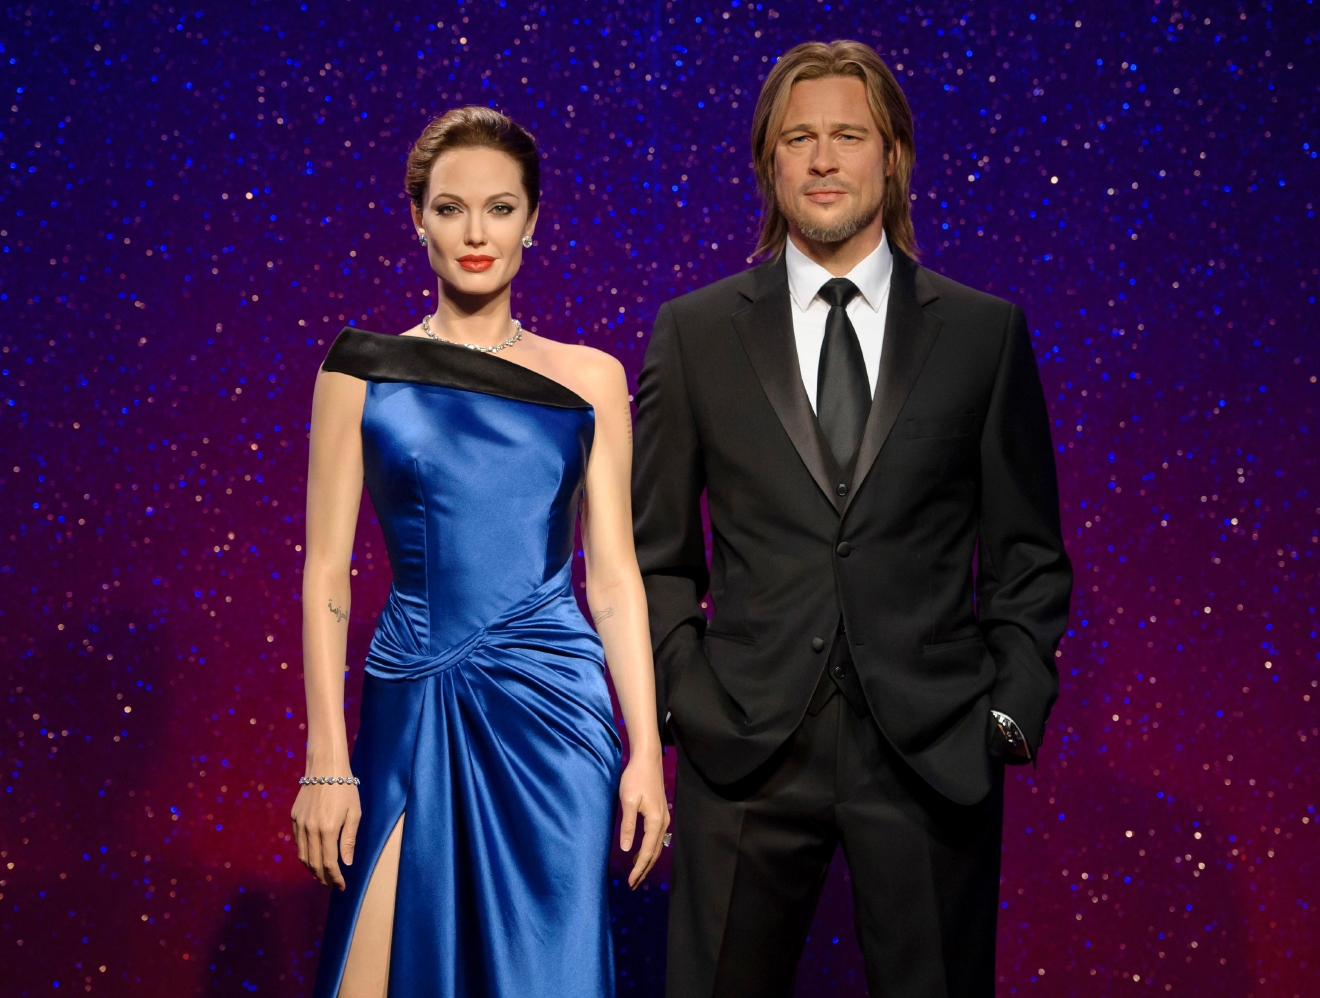 This 2013 photo released by Madame Tussauds shows wax figures resembling married actors Angelina Jolie Pitt, left, and Brad Pitt on display at a Madame Tussauds wax museum. (Madame Tussauds via AP)